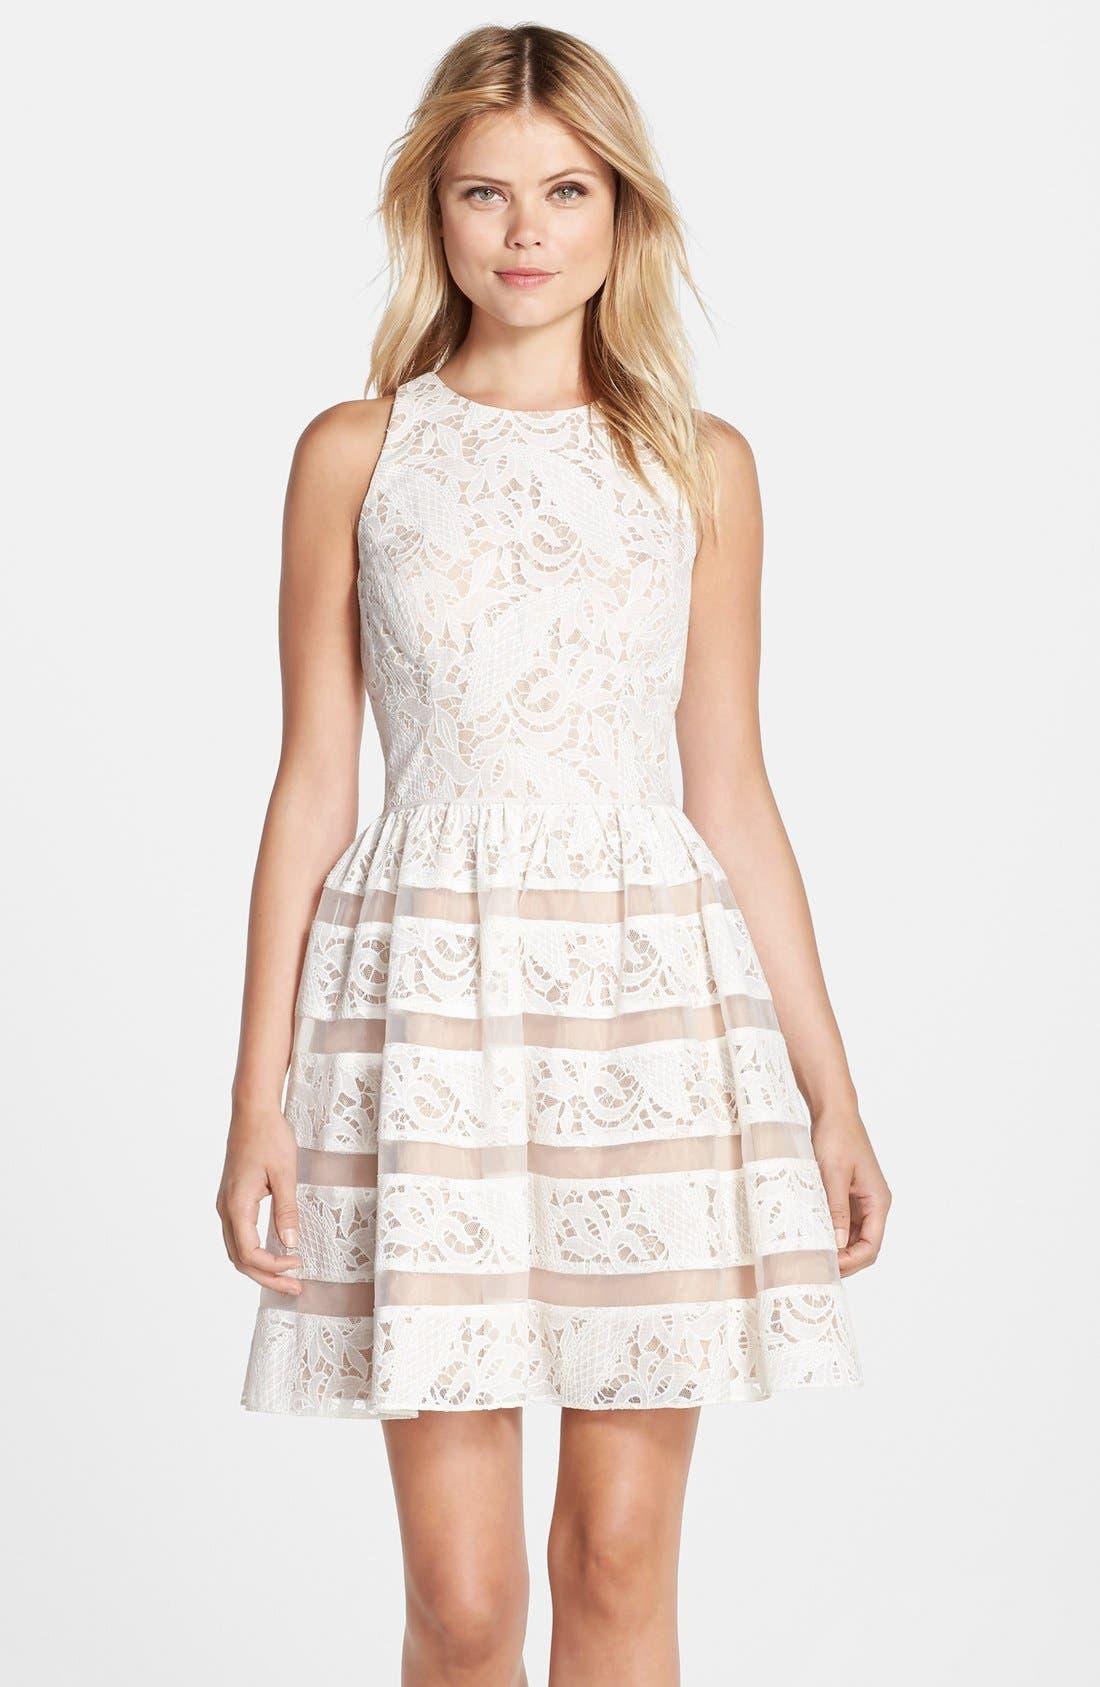 Alternate Image 1 Selected - Aidan by Aidan Mattox Lace Fit & Flare Dress